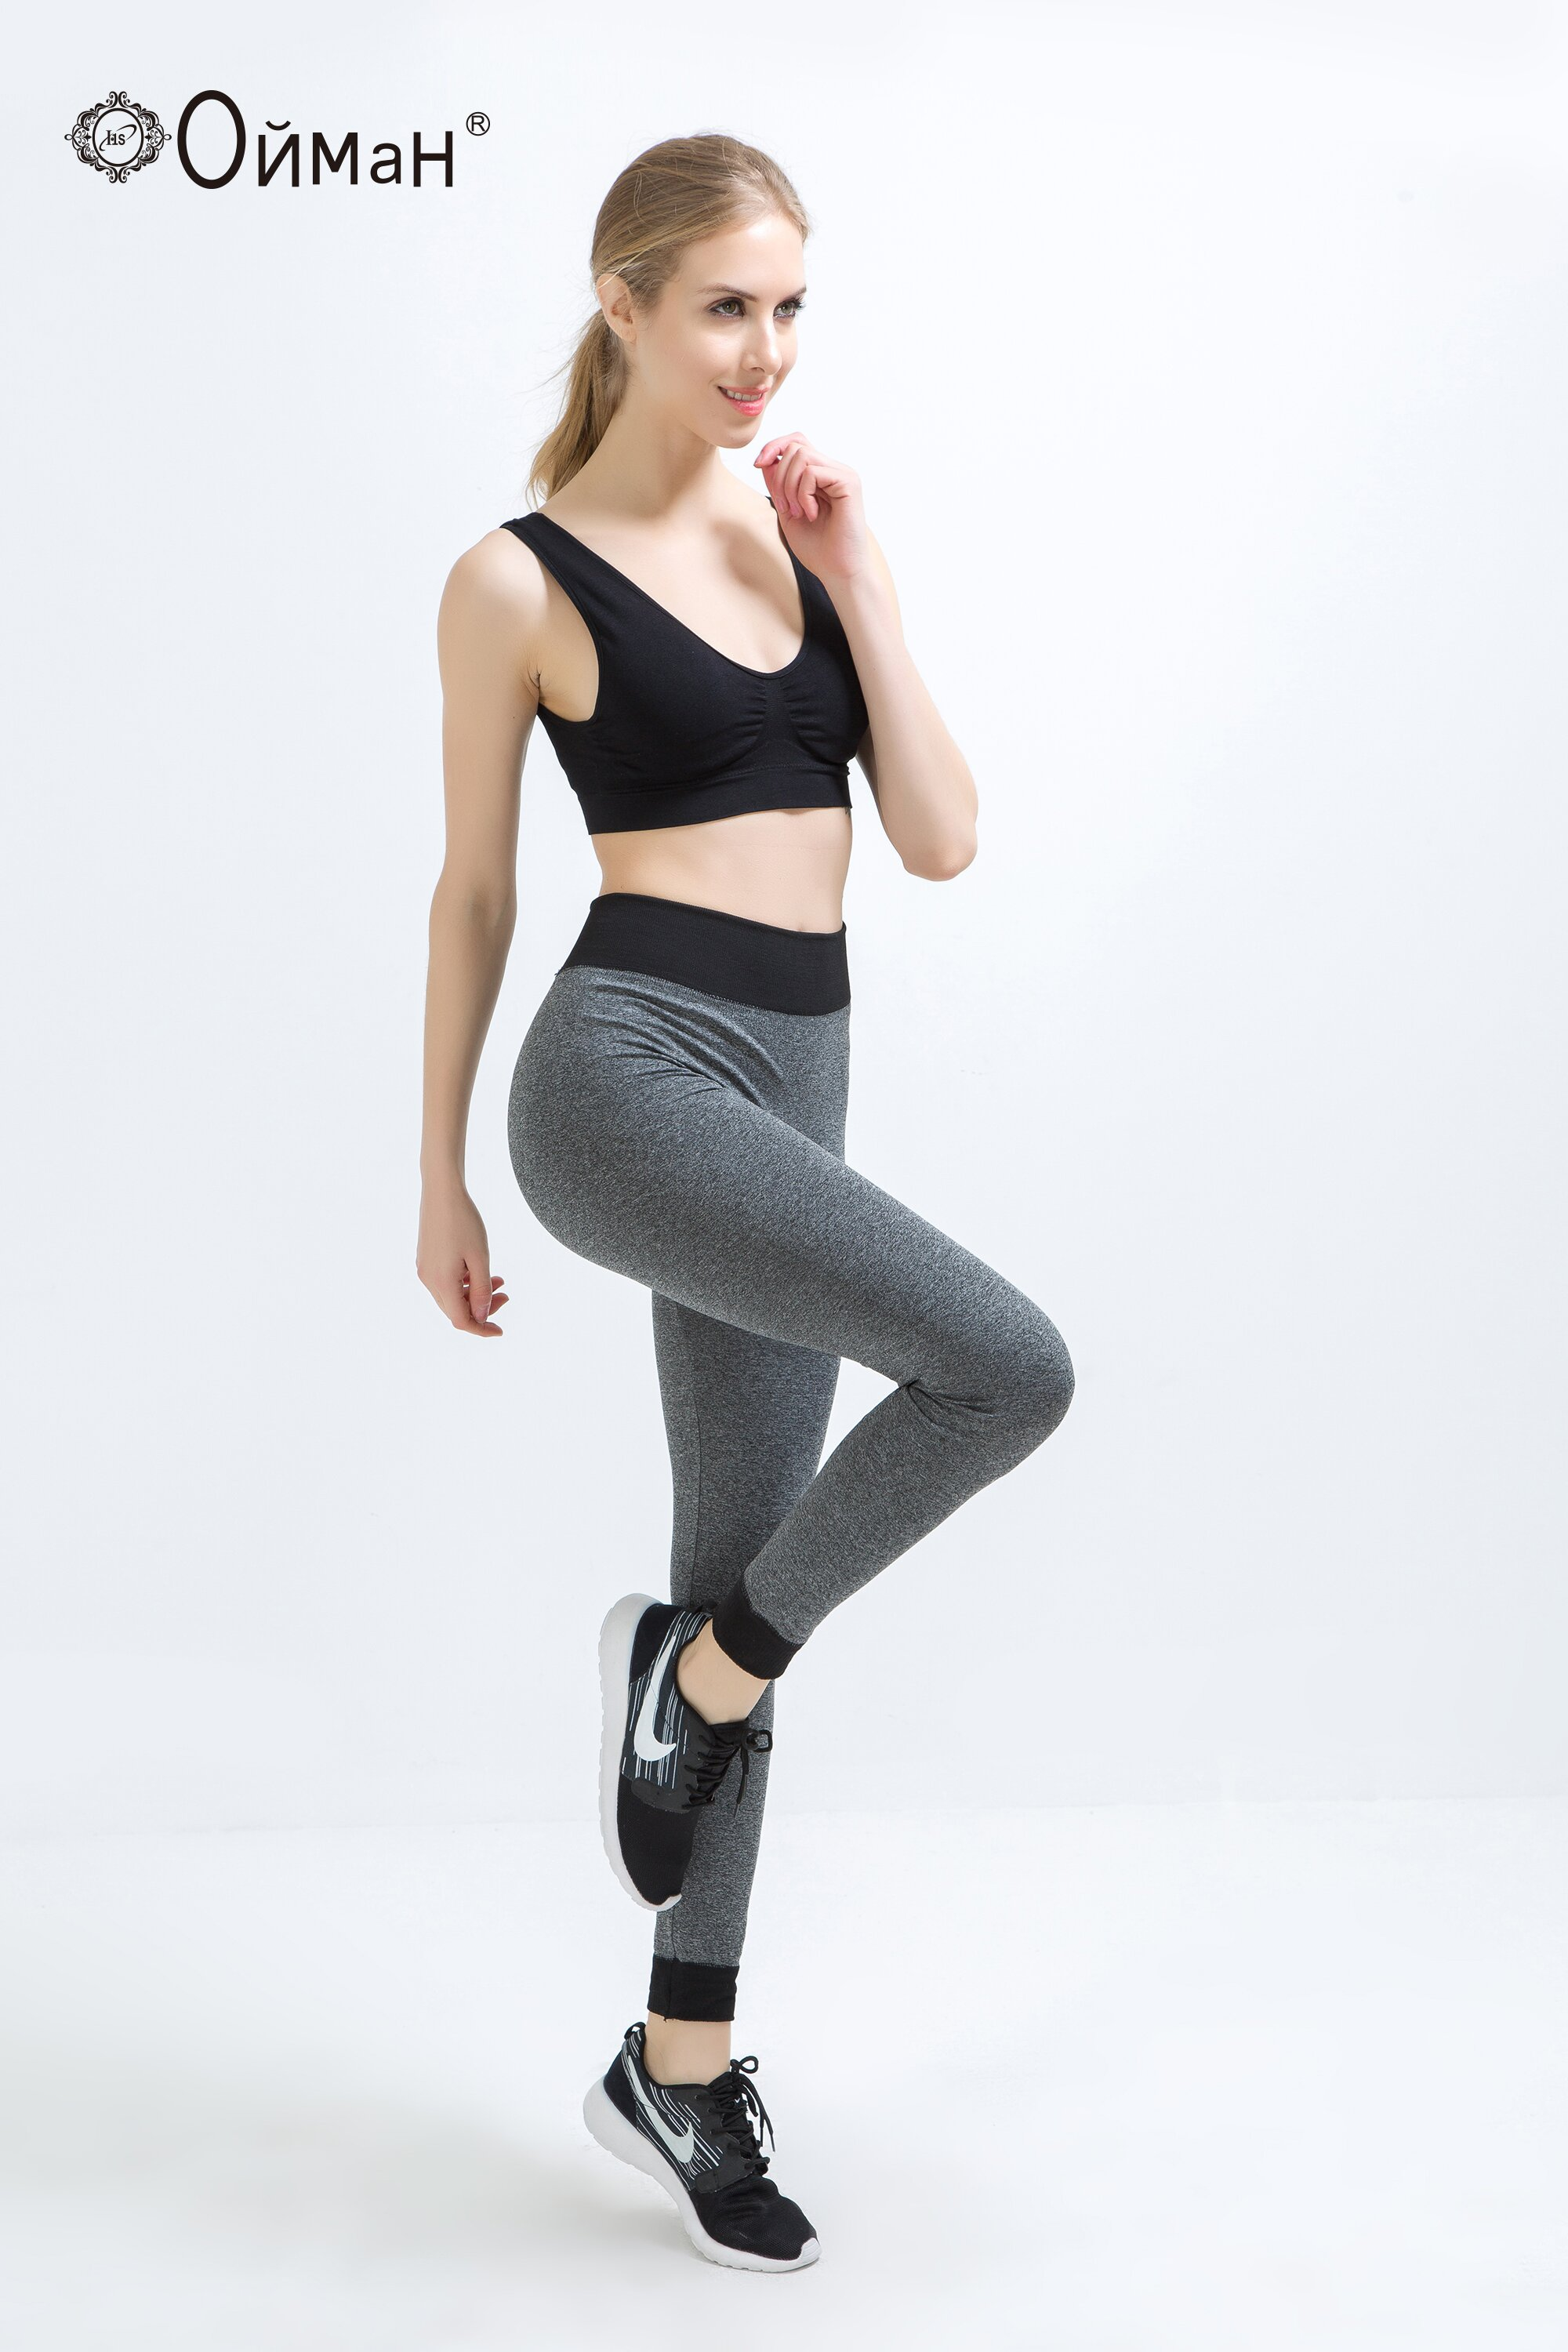 Jogging tights for women OEMEN LR666 leggings for running, yoga and fintess shipping from Russia